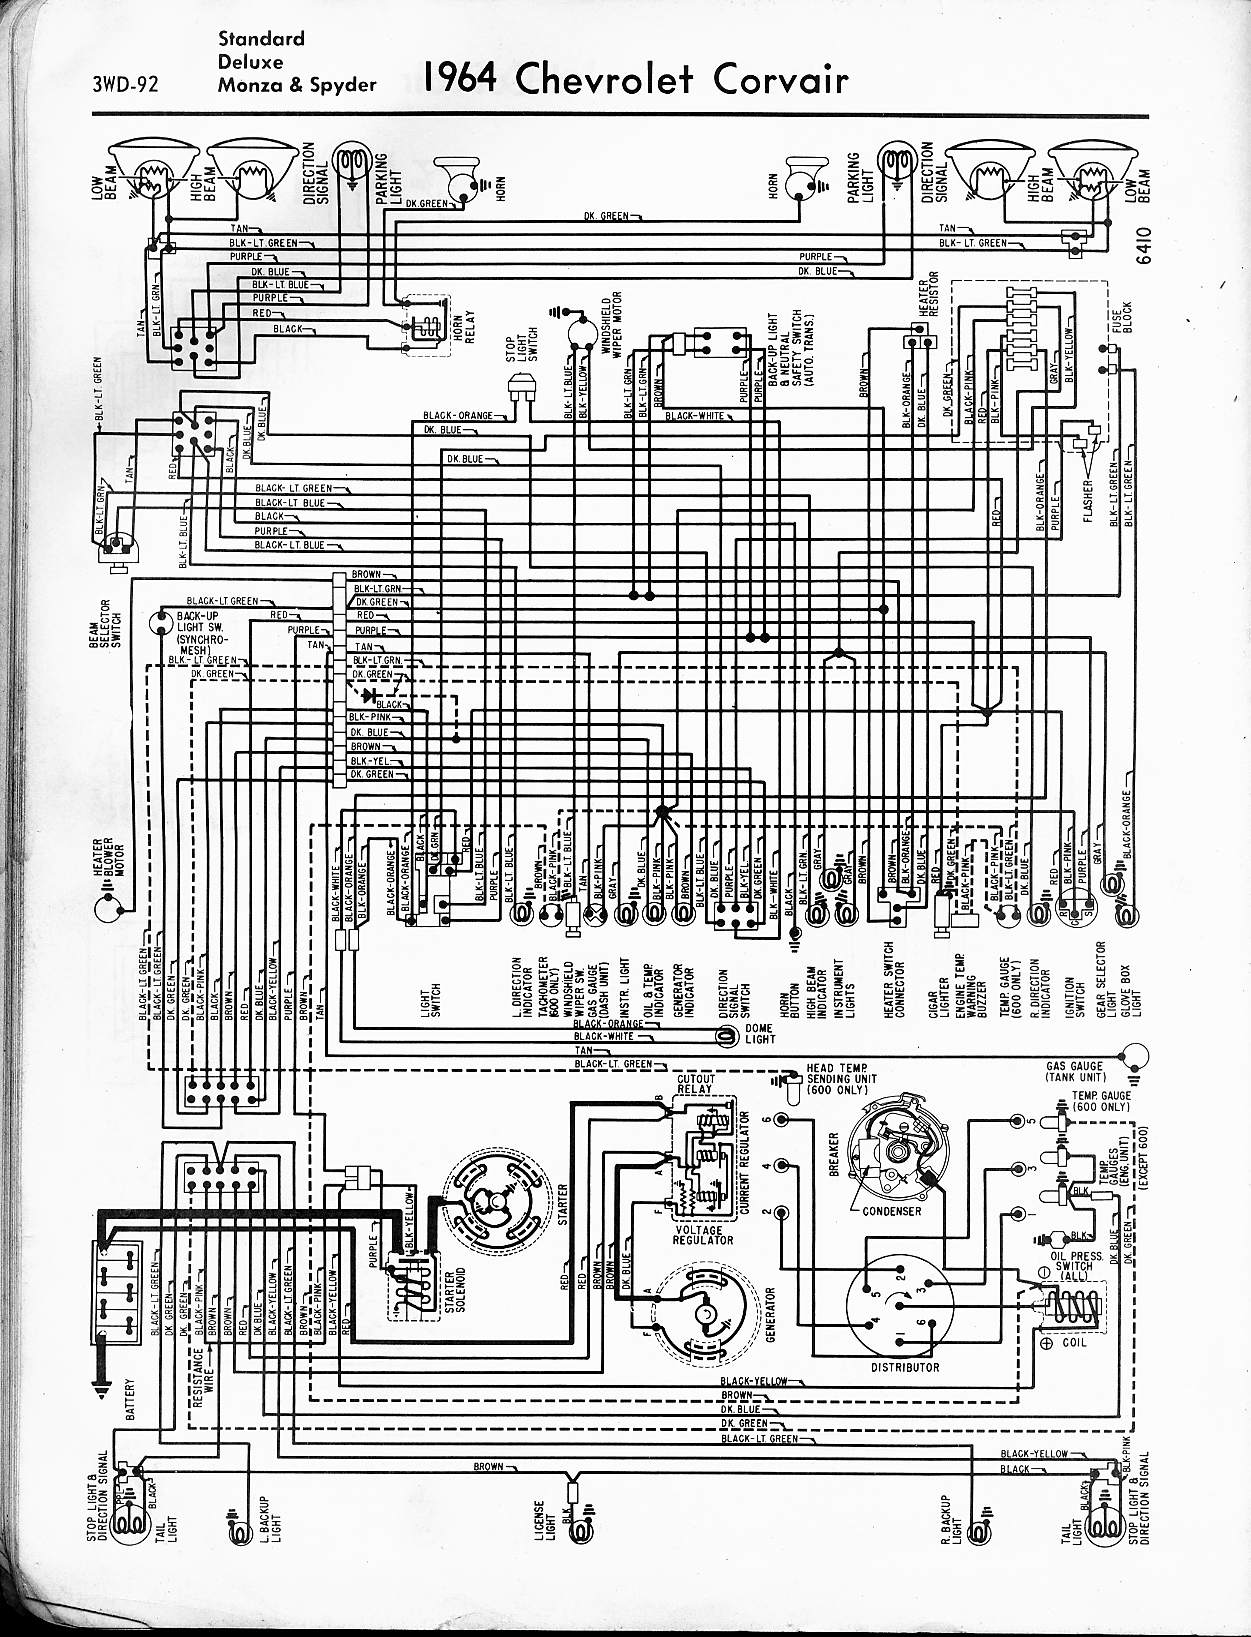 1966 chevy ii wiring diagram wiring diagram libraries 57 65 chevy wiring diagrams1964 corvair std deluxe monza spyder